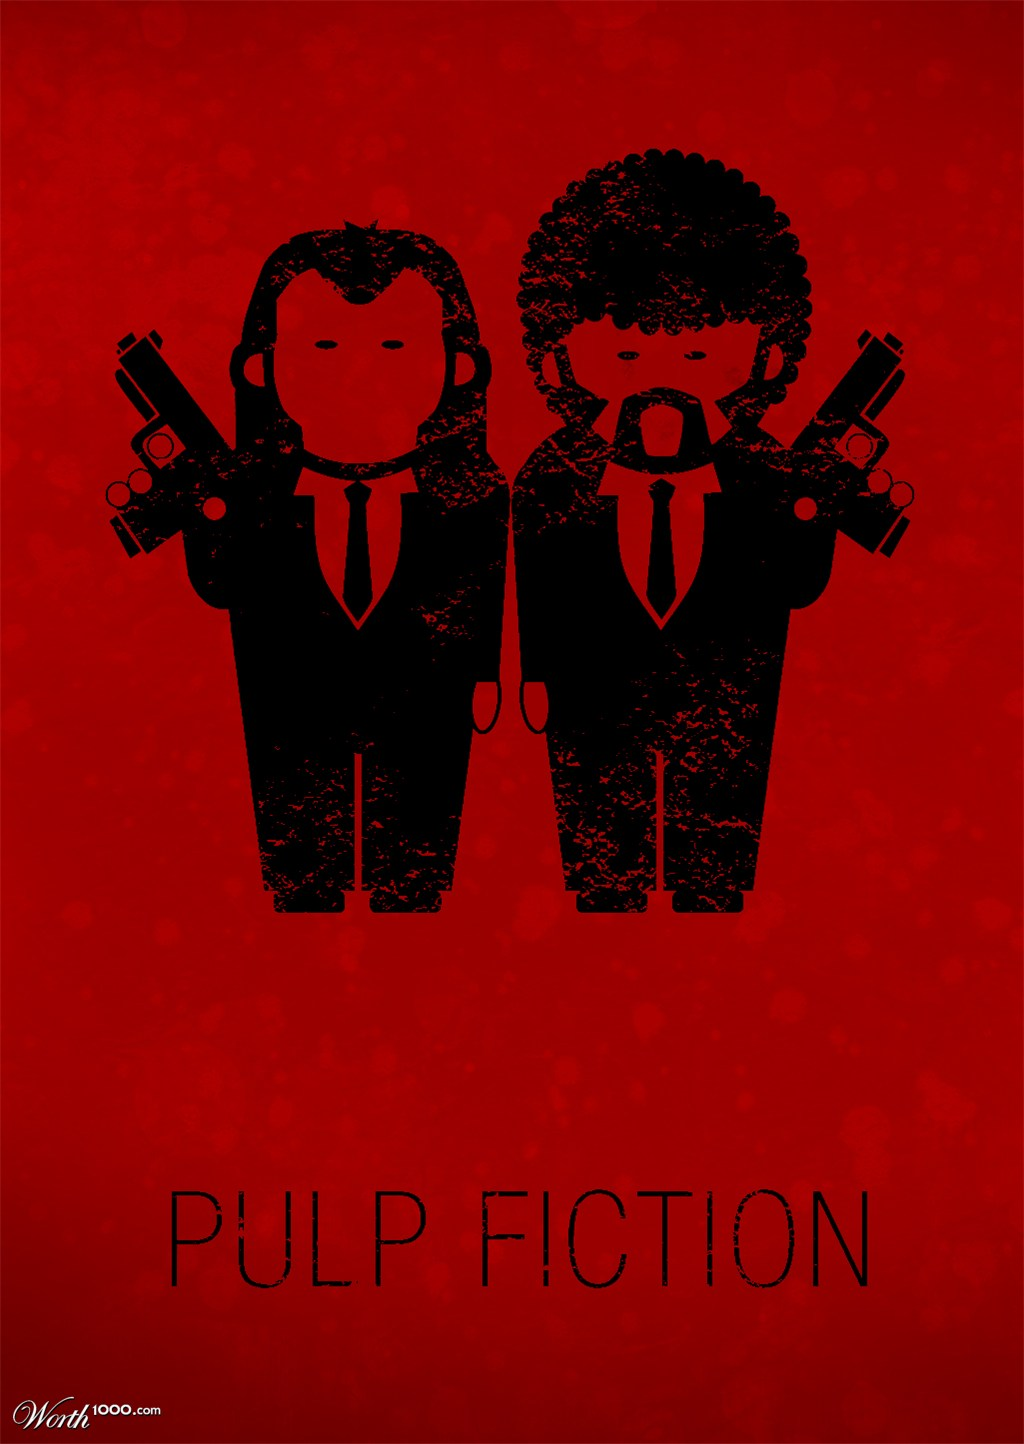 Minimalist Movie Posters 4 Pulp Fiction Poster